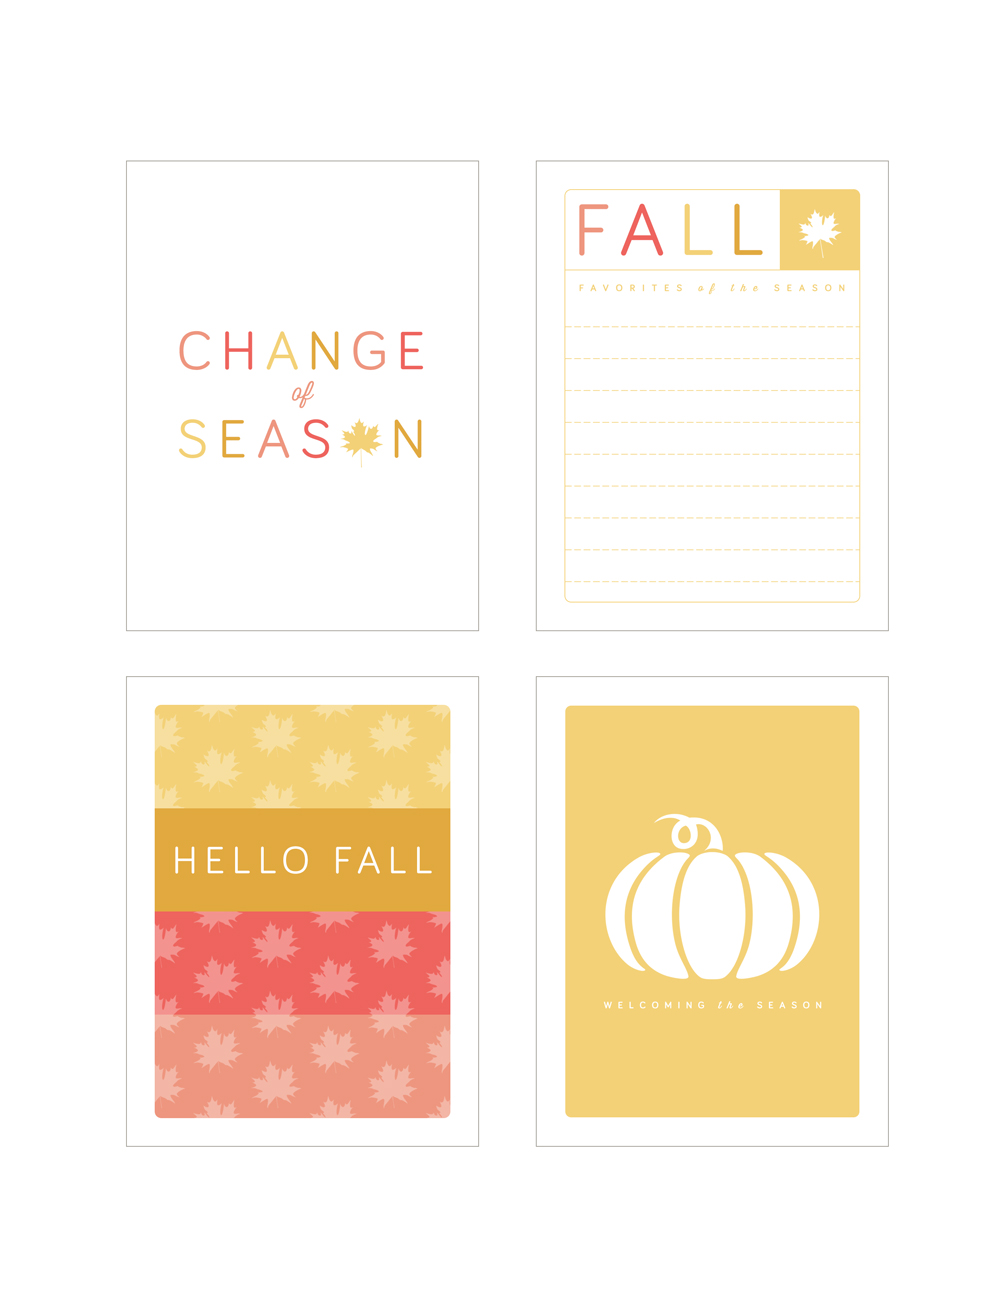 Fall Blessings 2014 Printable Cards